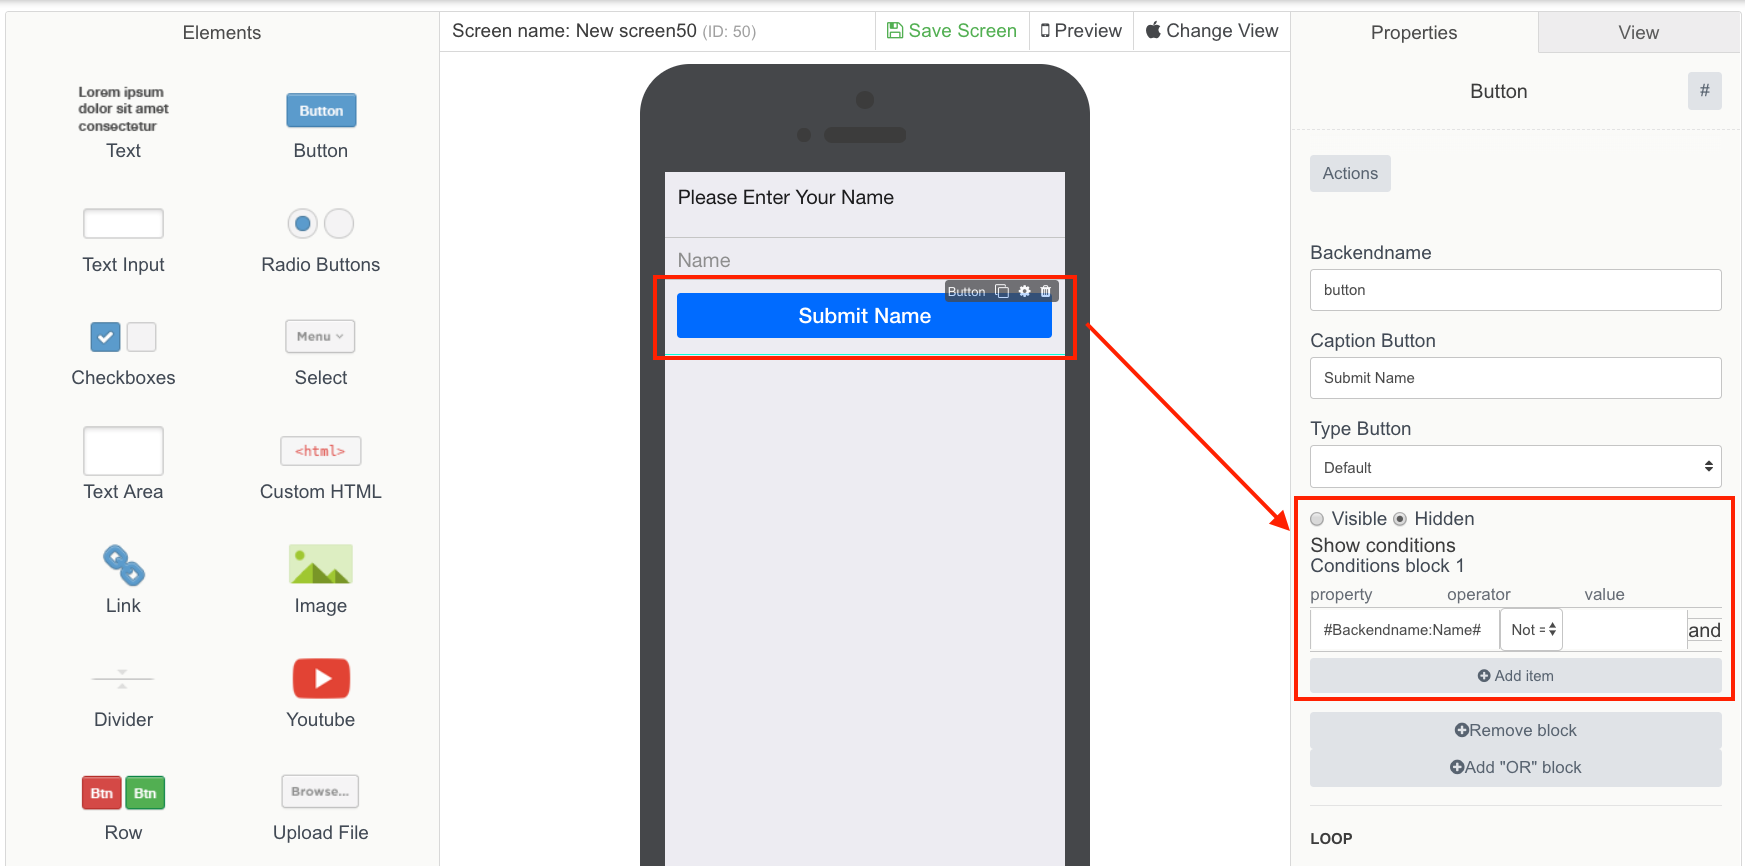 the Screenshot shows how to hide the button element in Mobsted Multichannel PWA application builder